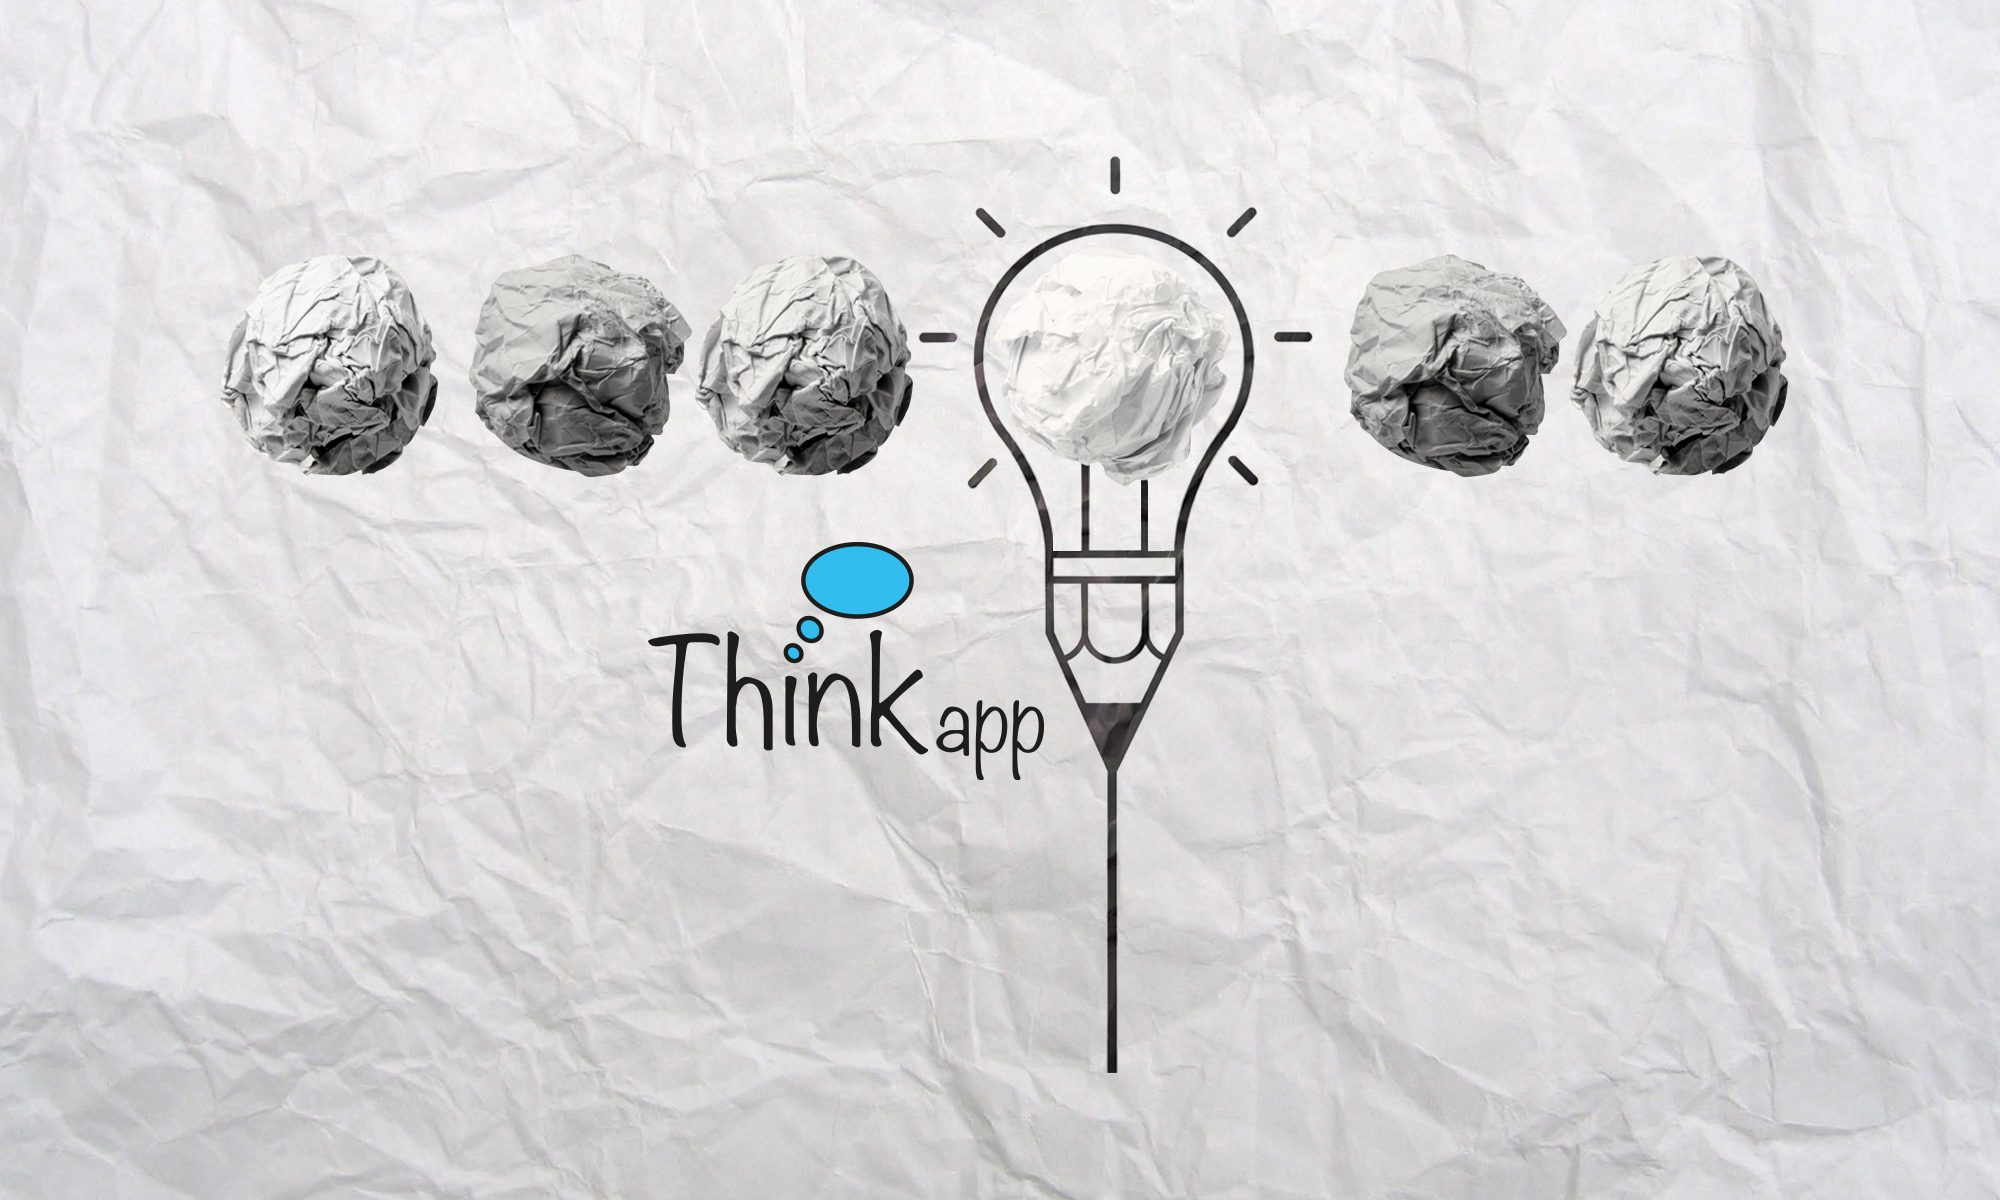 ThinkApp